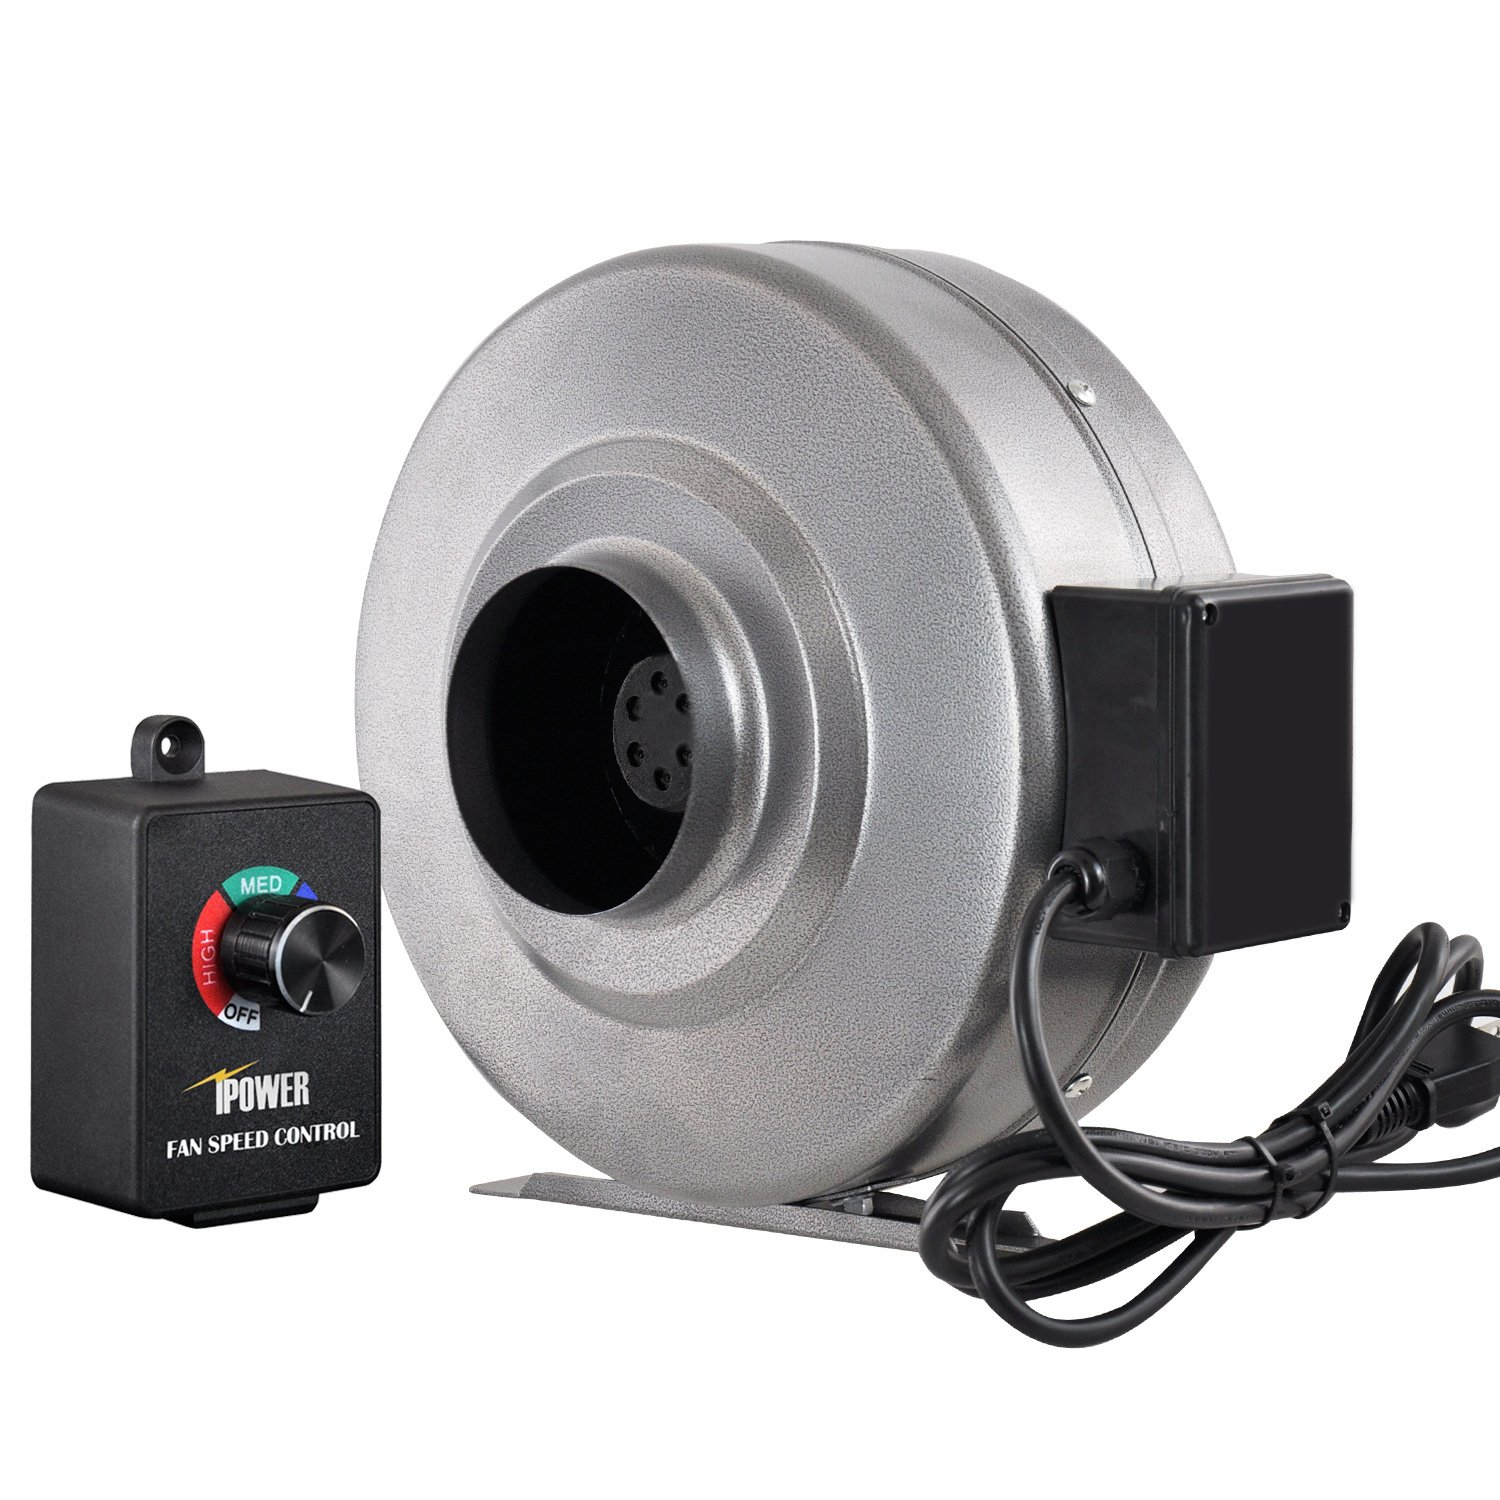 iPower 4 inch 206 CFM Duct Inline Fan HVAC Exhaust Blower Variable Speed Controller